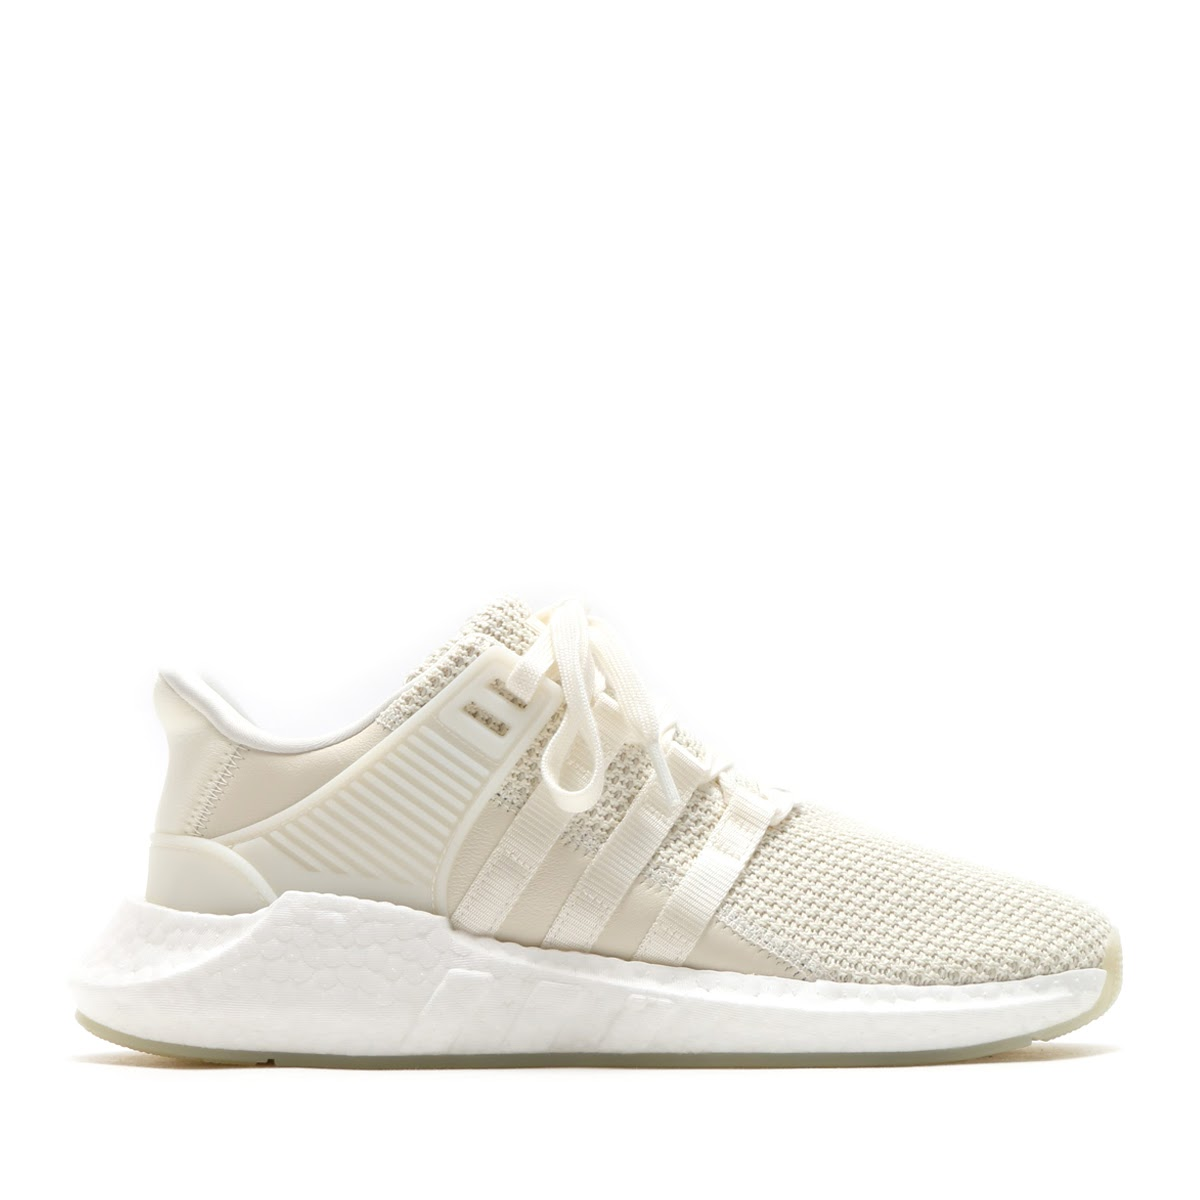 Eqt Adidas Chaussure 93 17 Support m8nvwN0